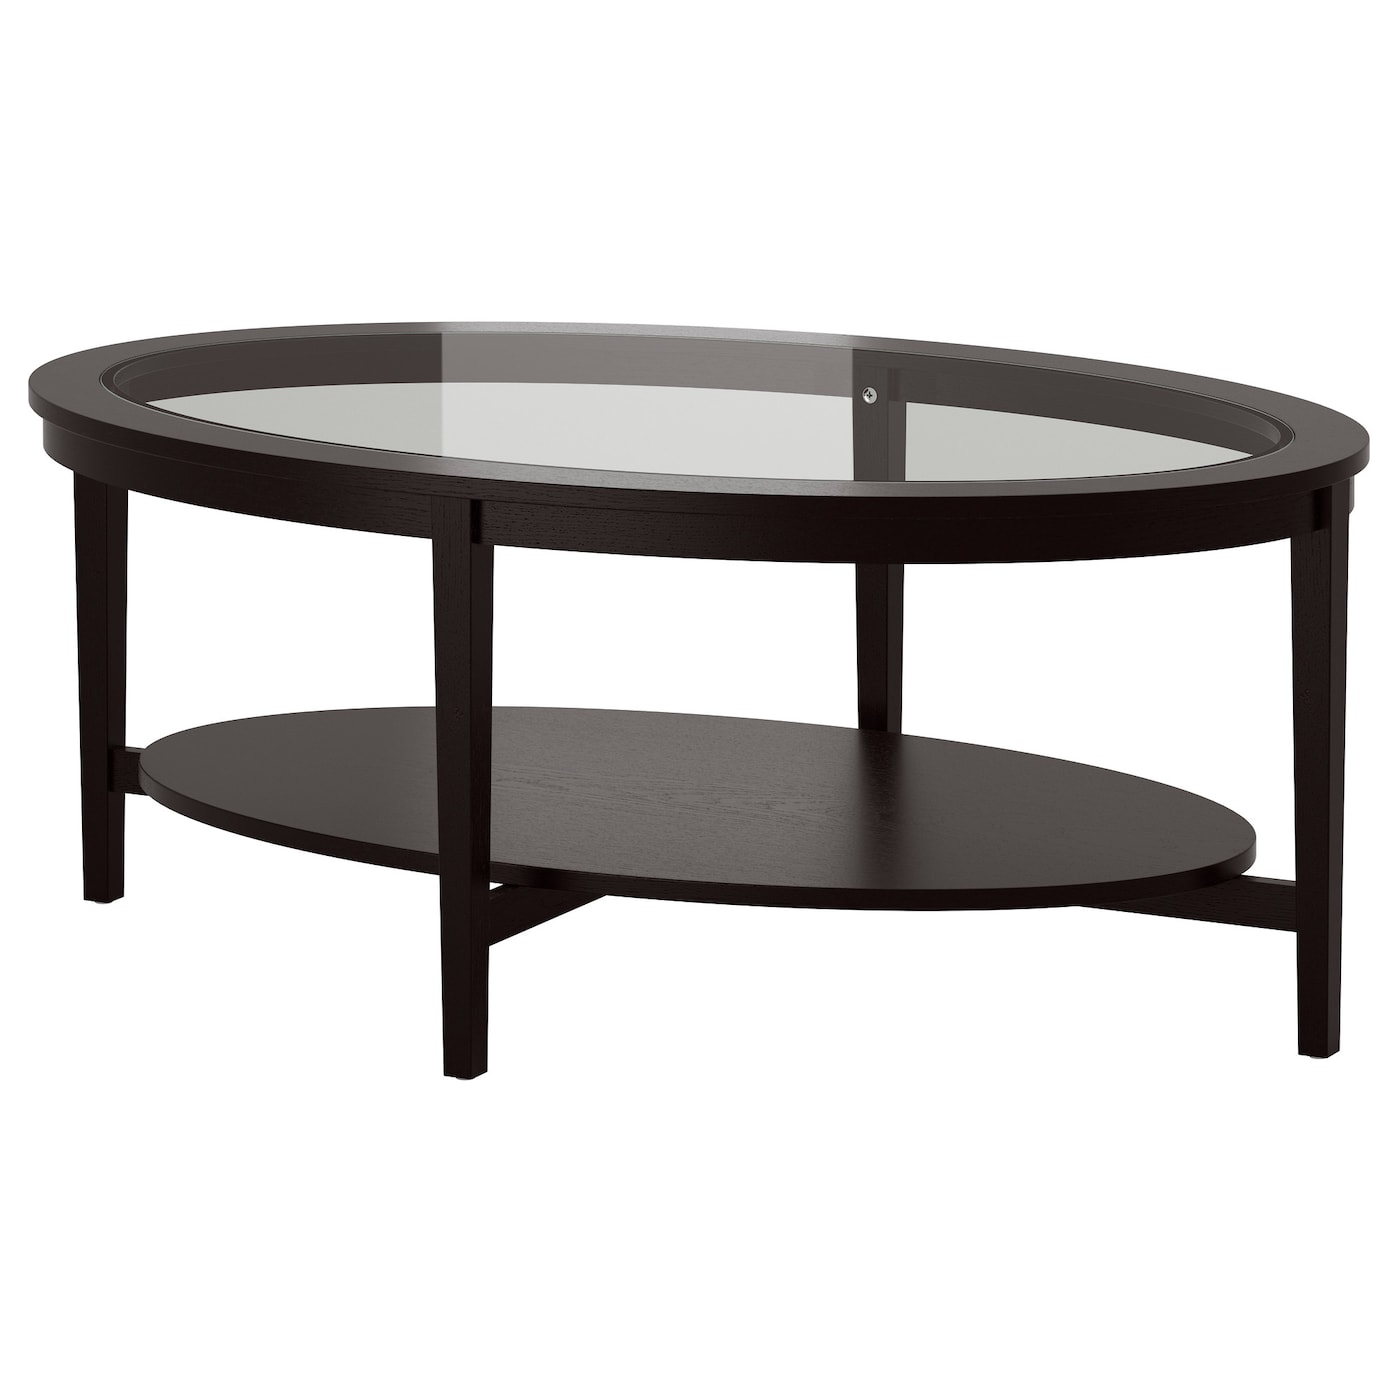 malmsta coffee table black brown 130x80 cm ikea. Black Bedroom Furniture Sets. Home Design Ideas